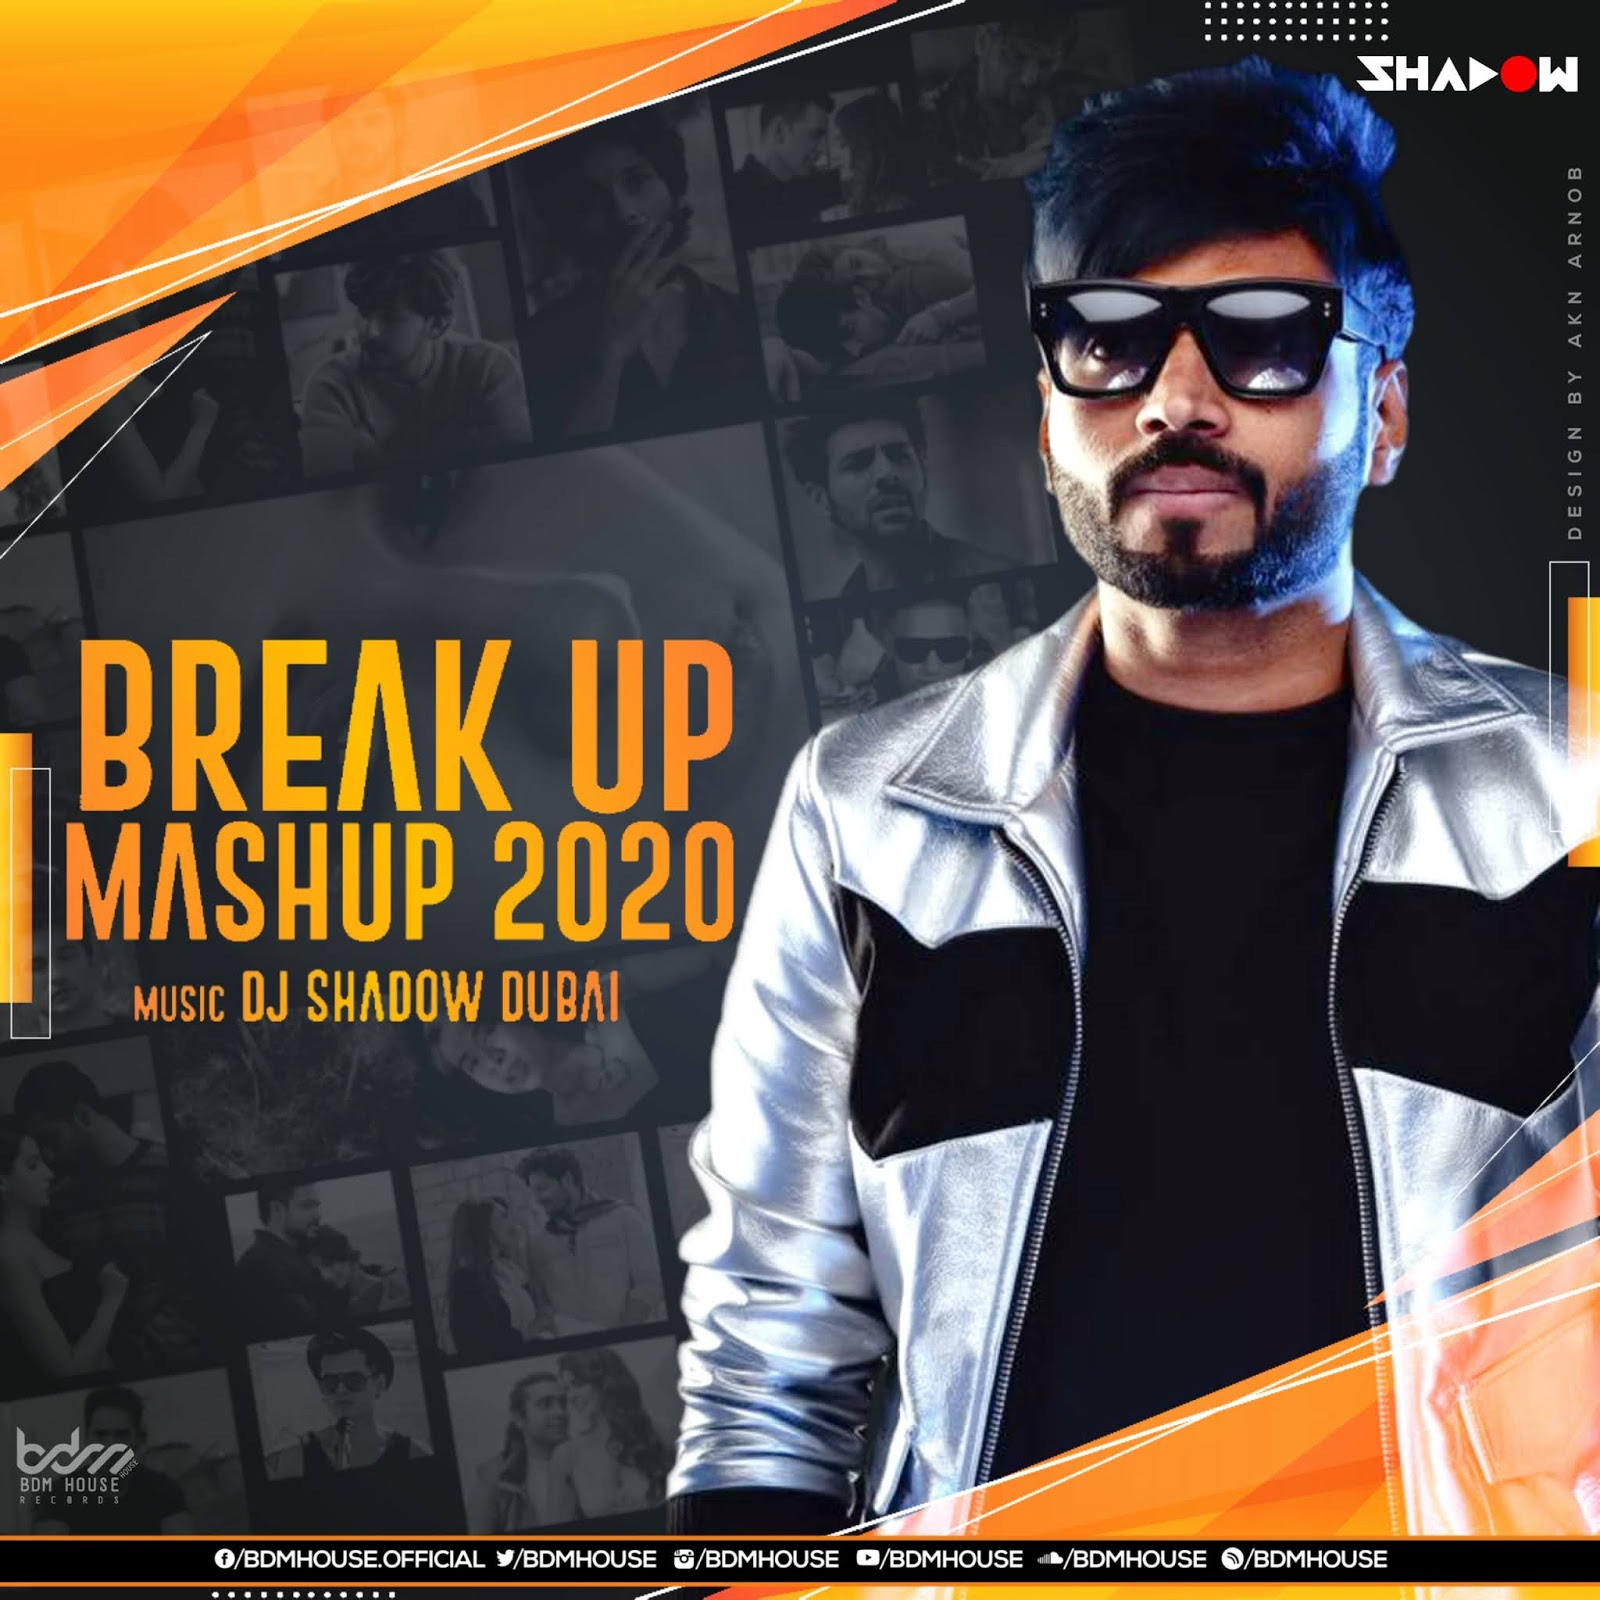 Breakup Mashup 2020 - DJ Shadow Dubai